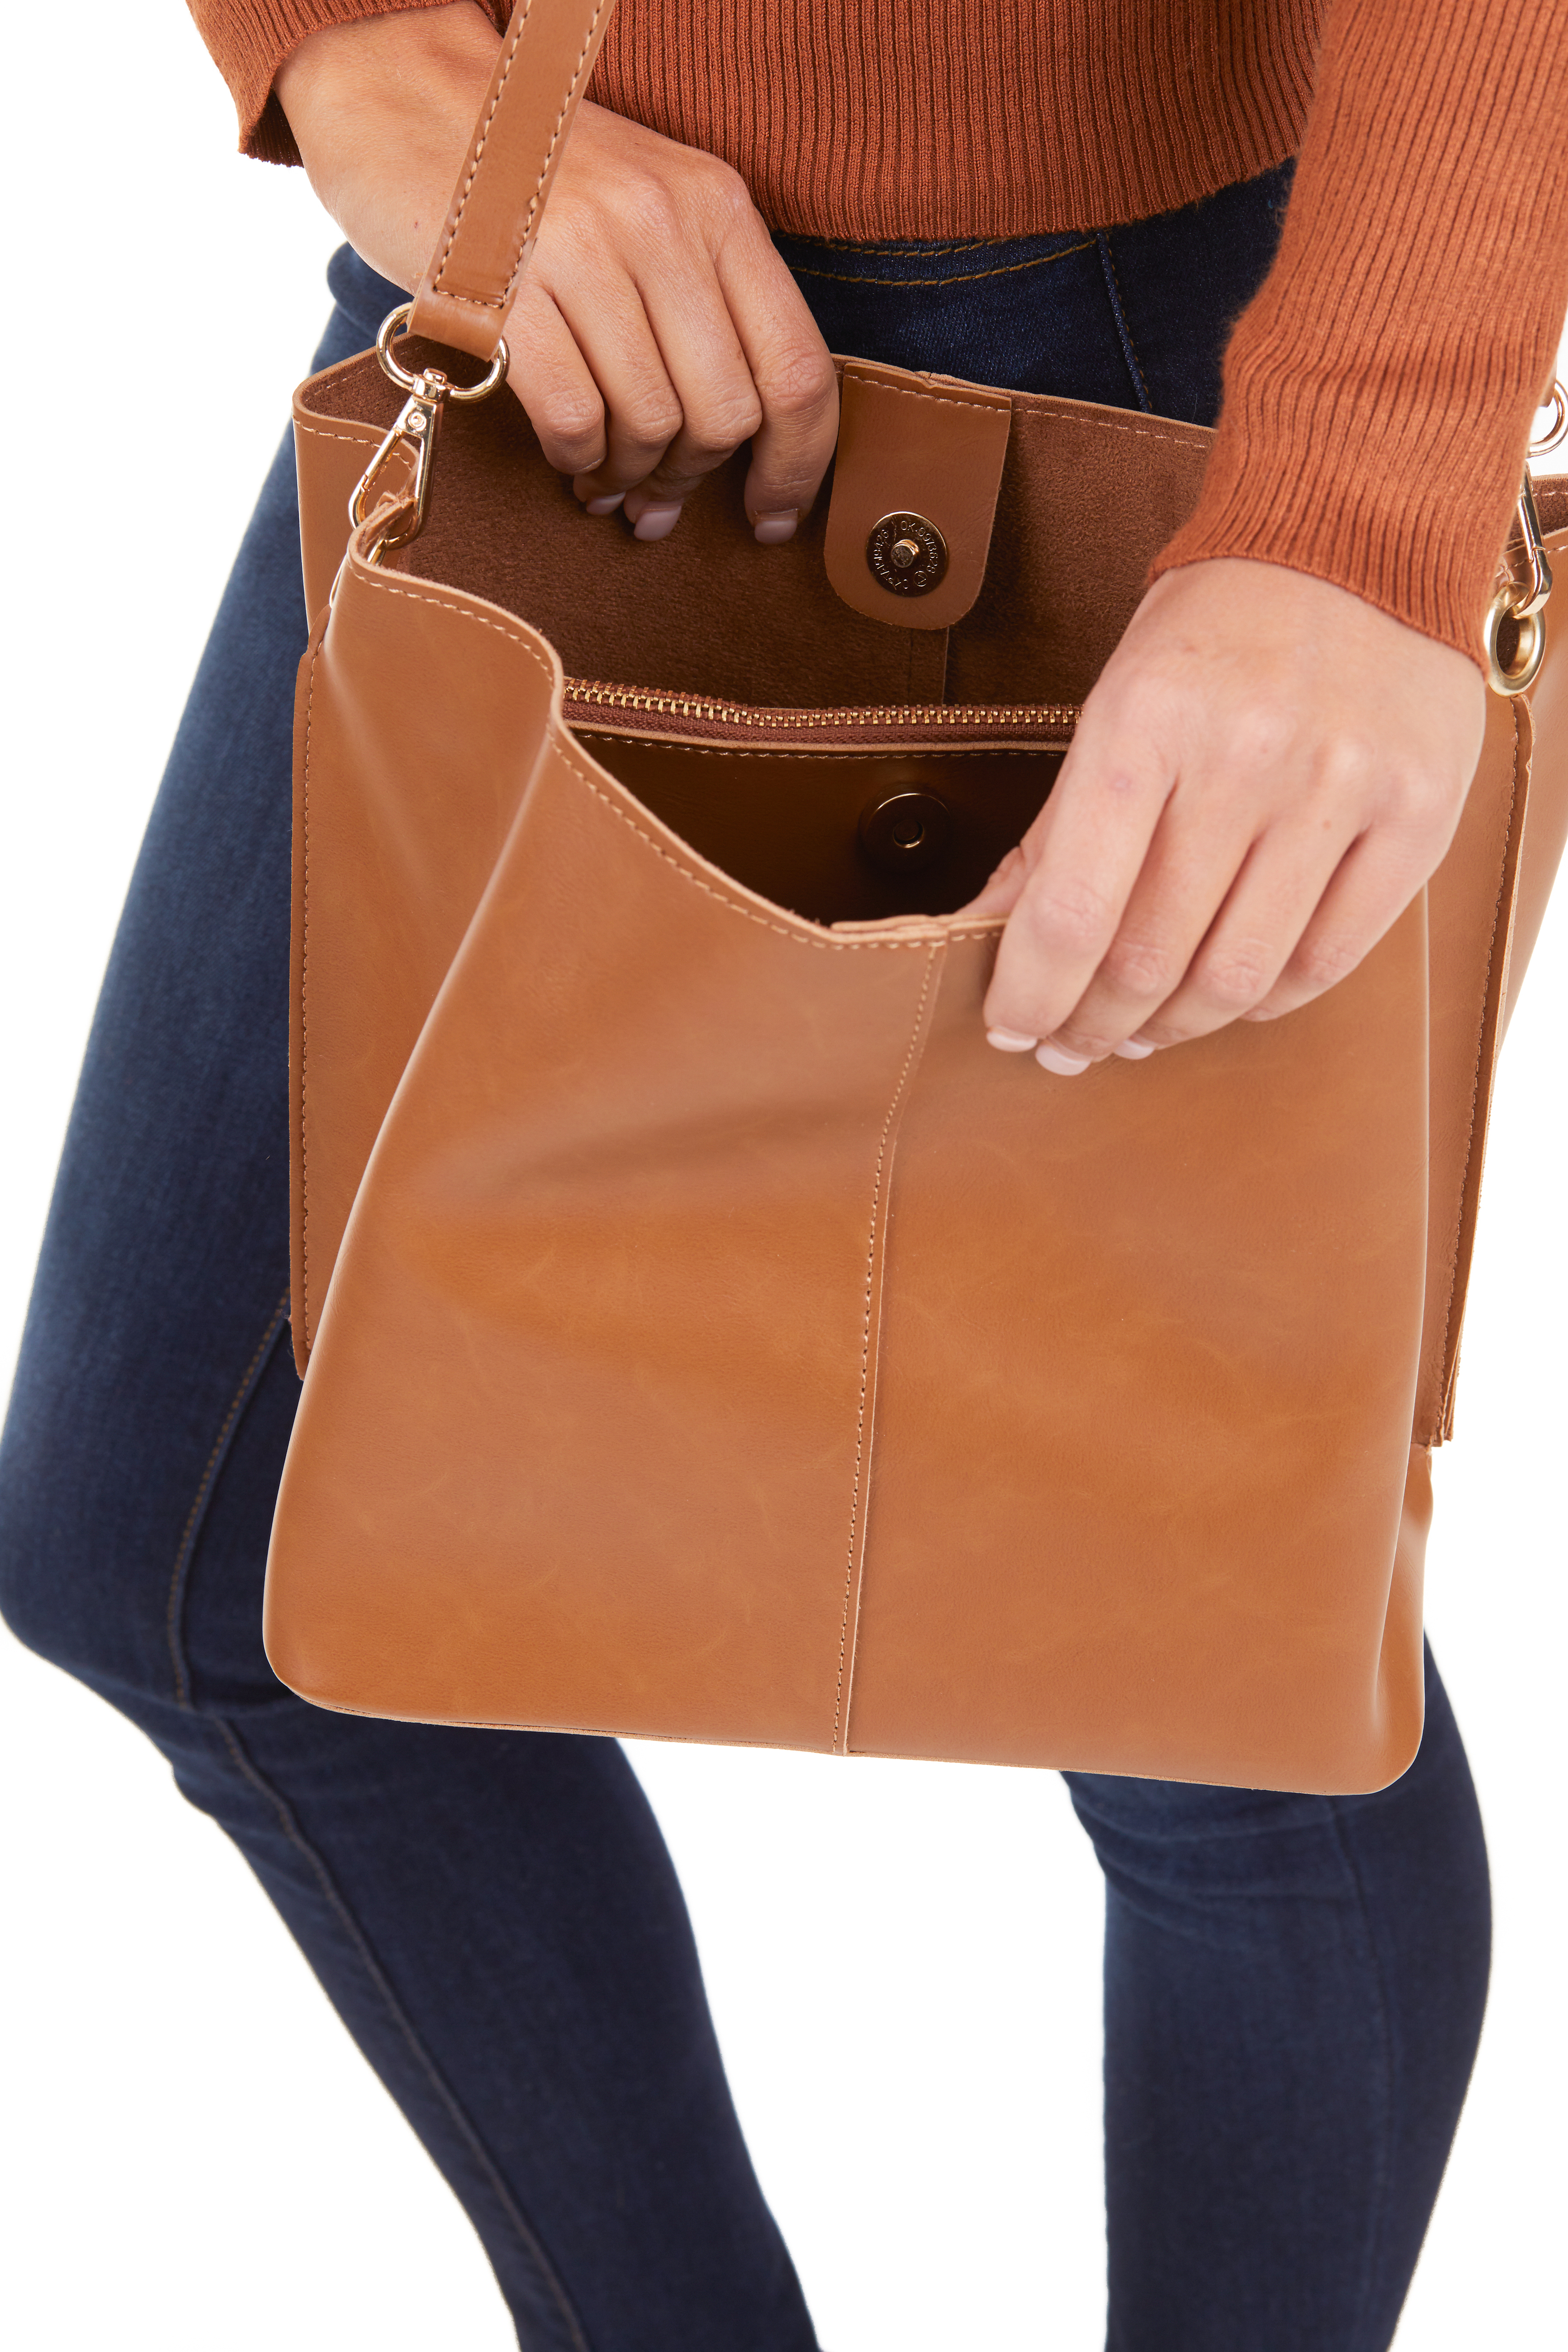 Cognac Faux Leather Tote Bag with Over the Shoulder Strap